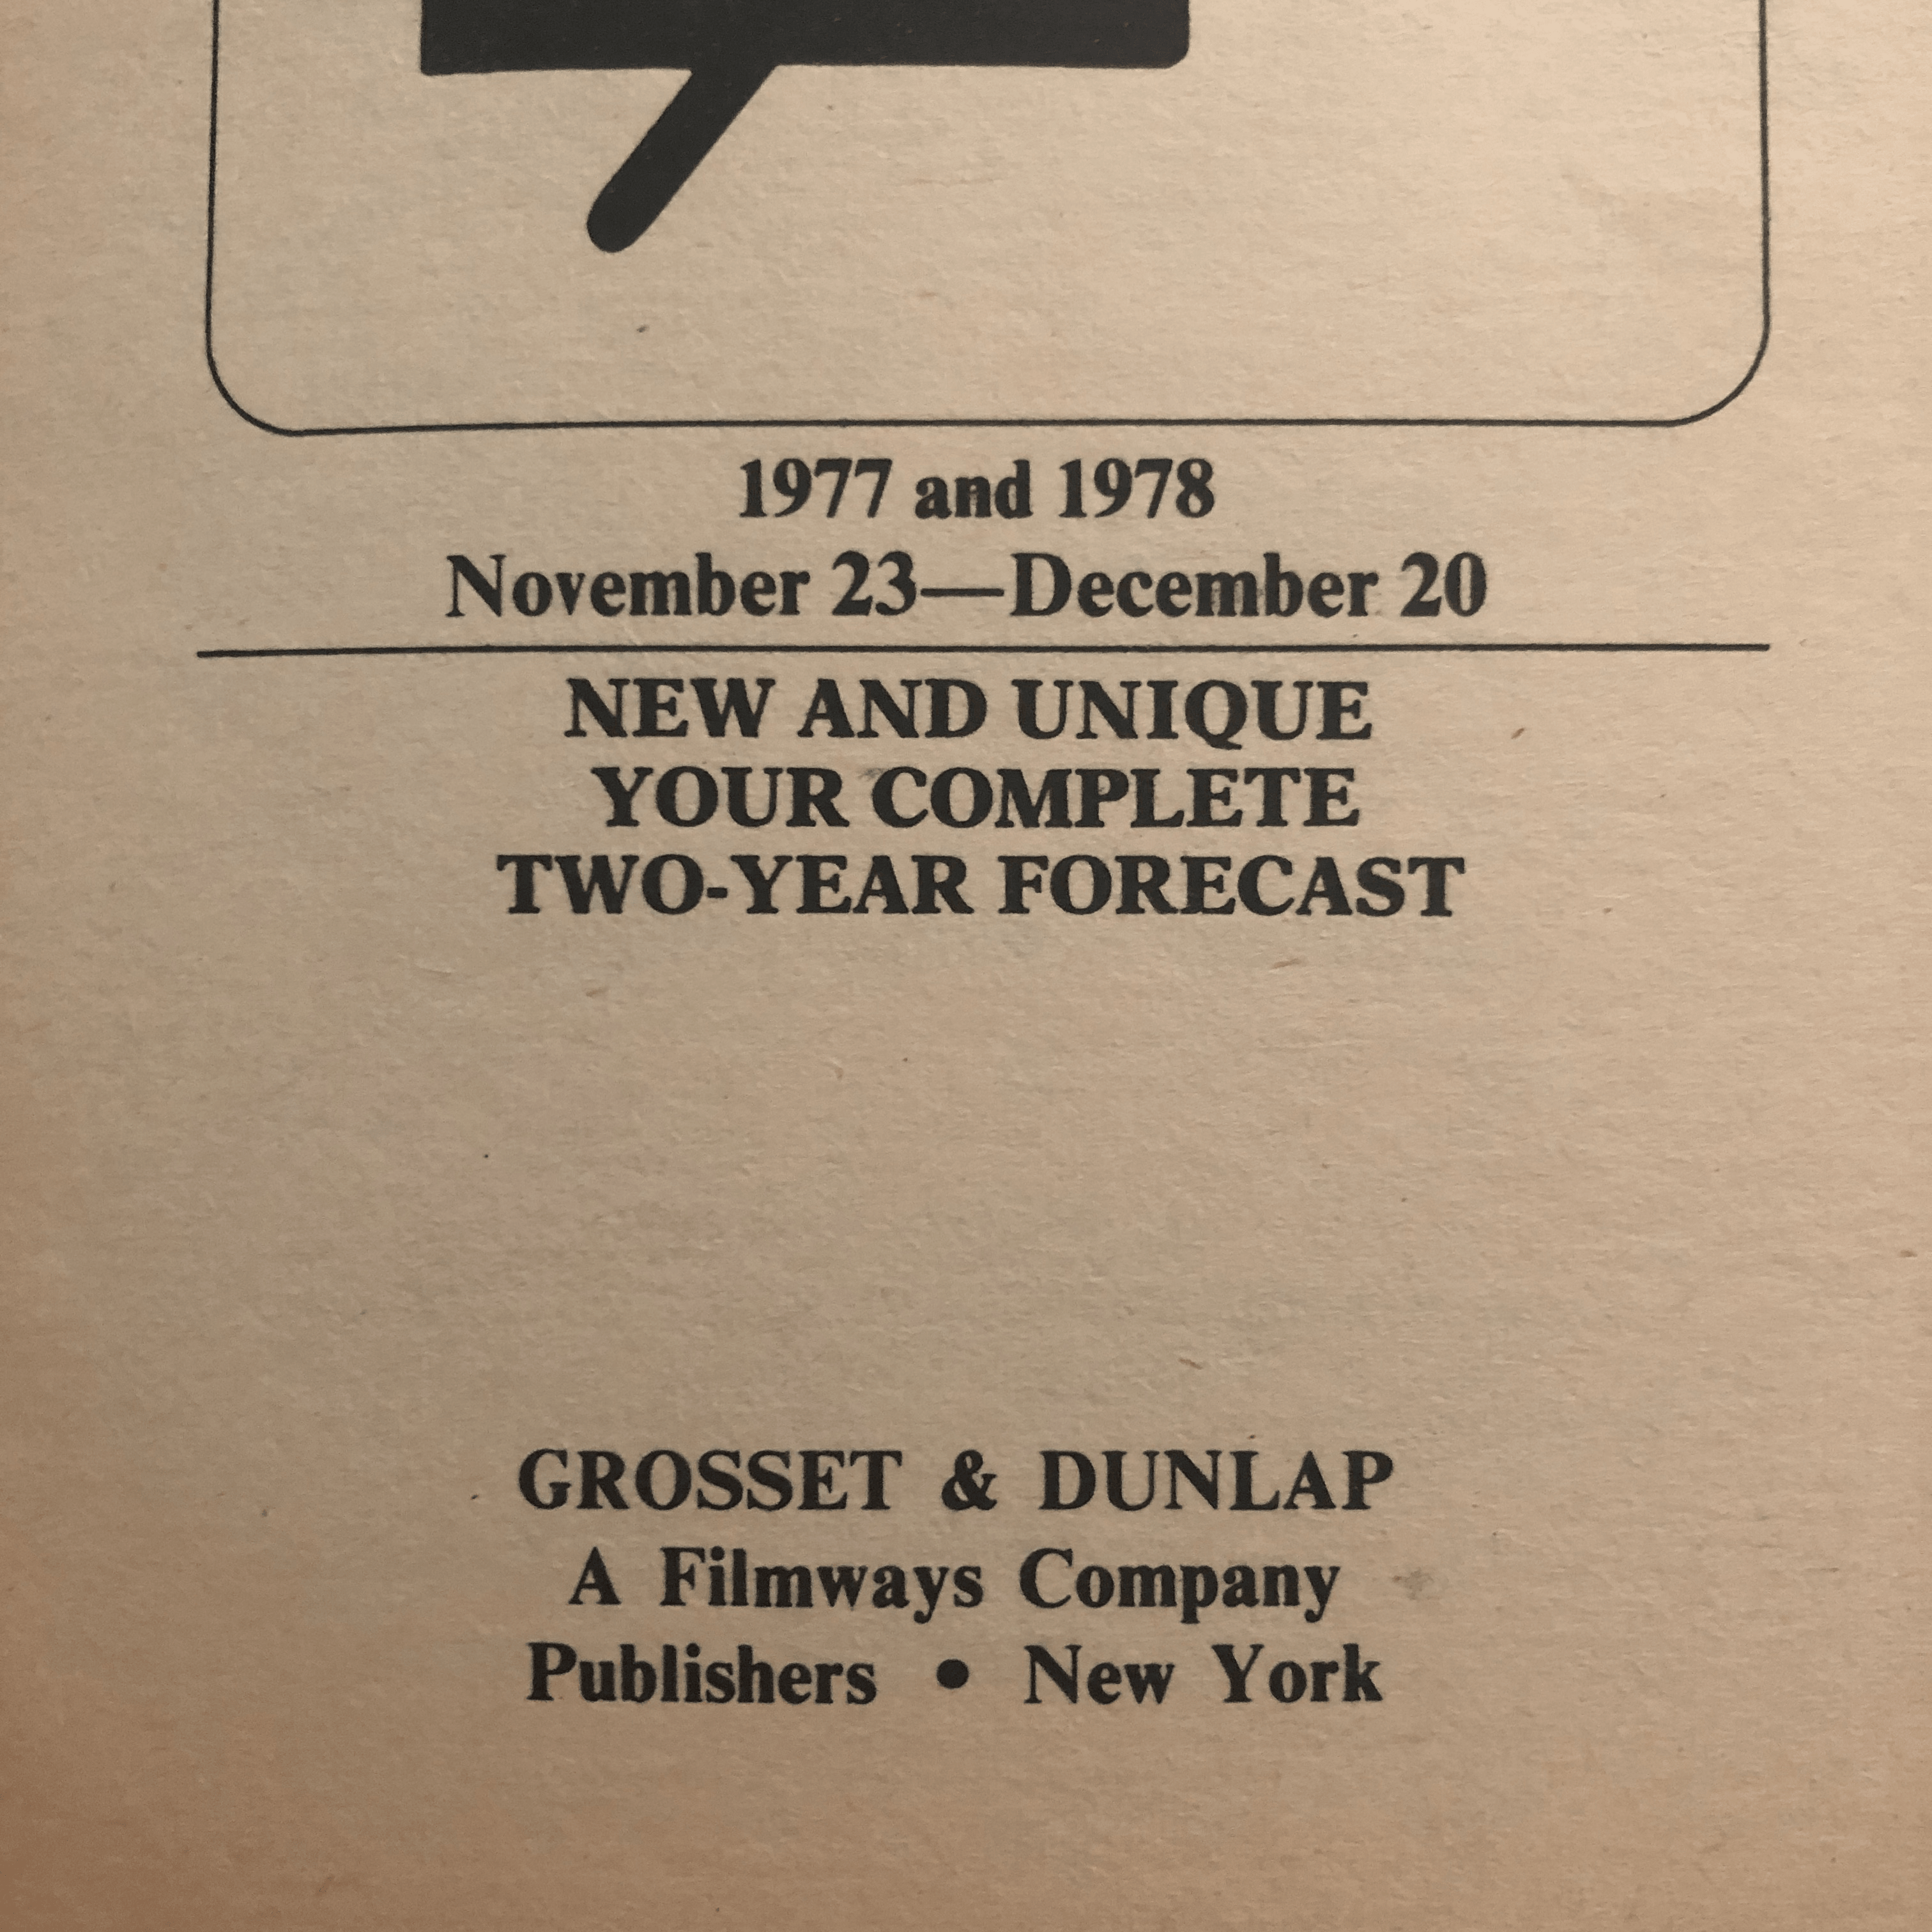 The title page for an astrology book that says 1977 and 1978 November 23-December 20. New and unique your complete two-year forecast. Grosset & Dunlap A Filmways Company. Publishers New York.